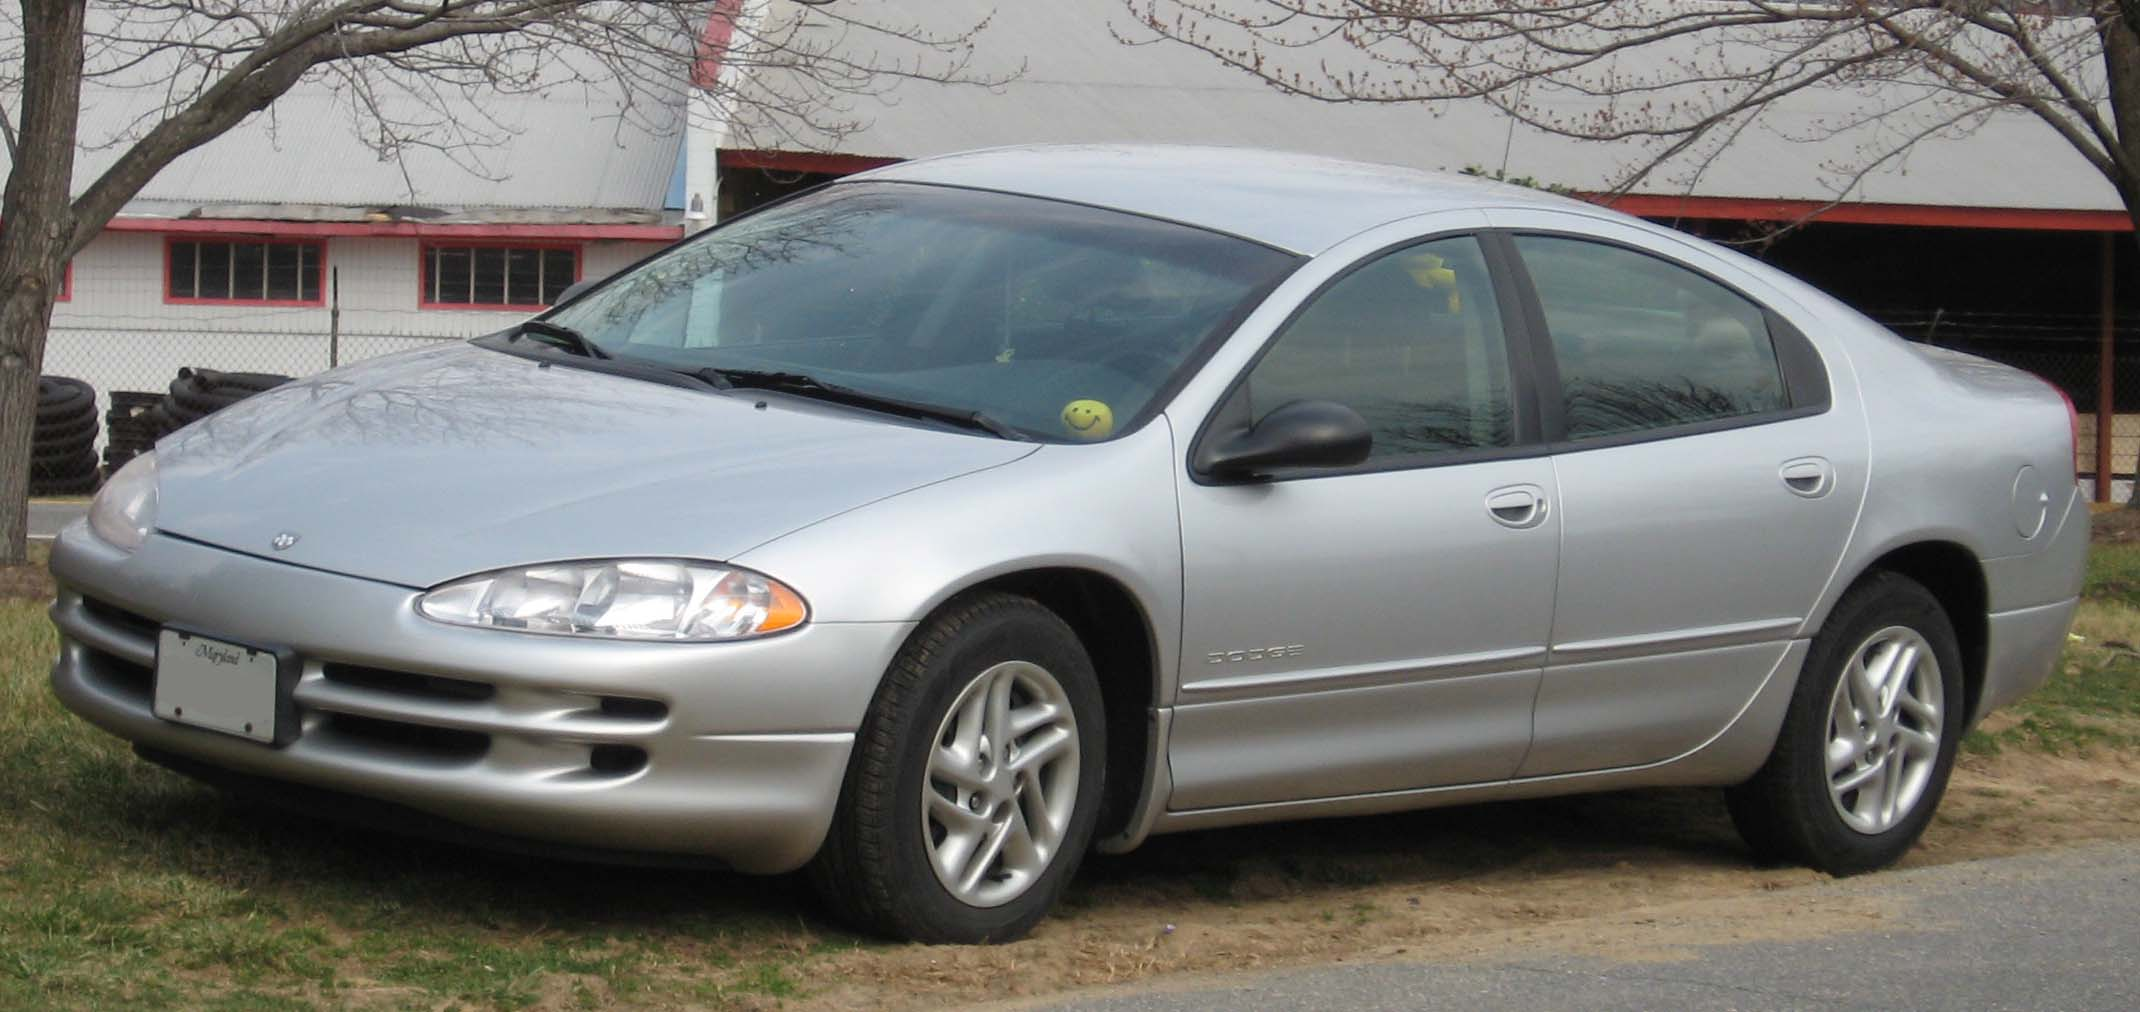 2002 Dodge Intrepid #6